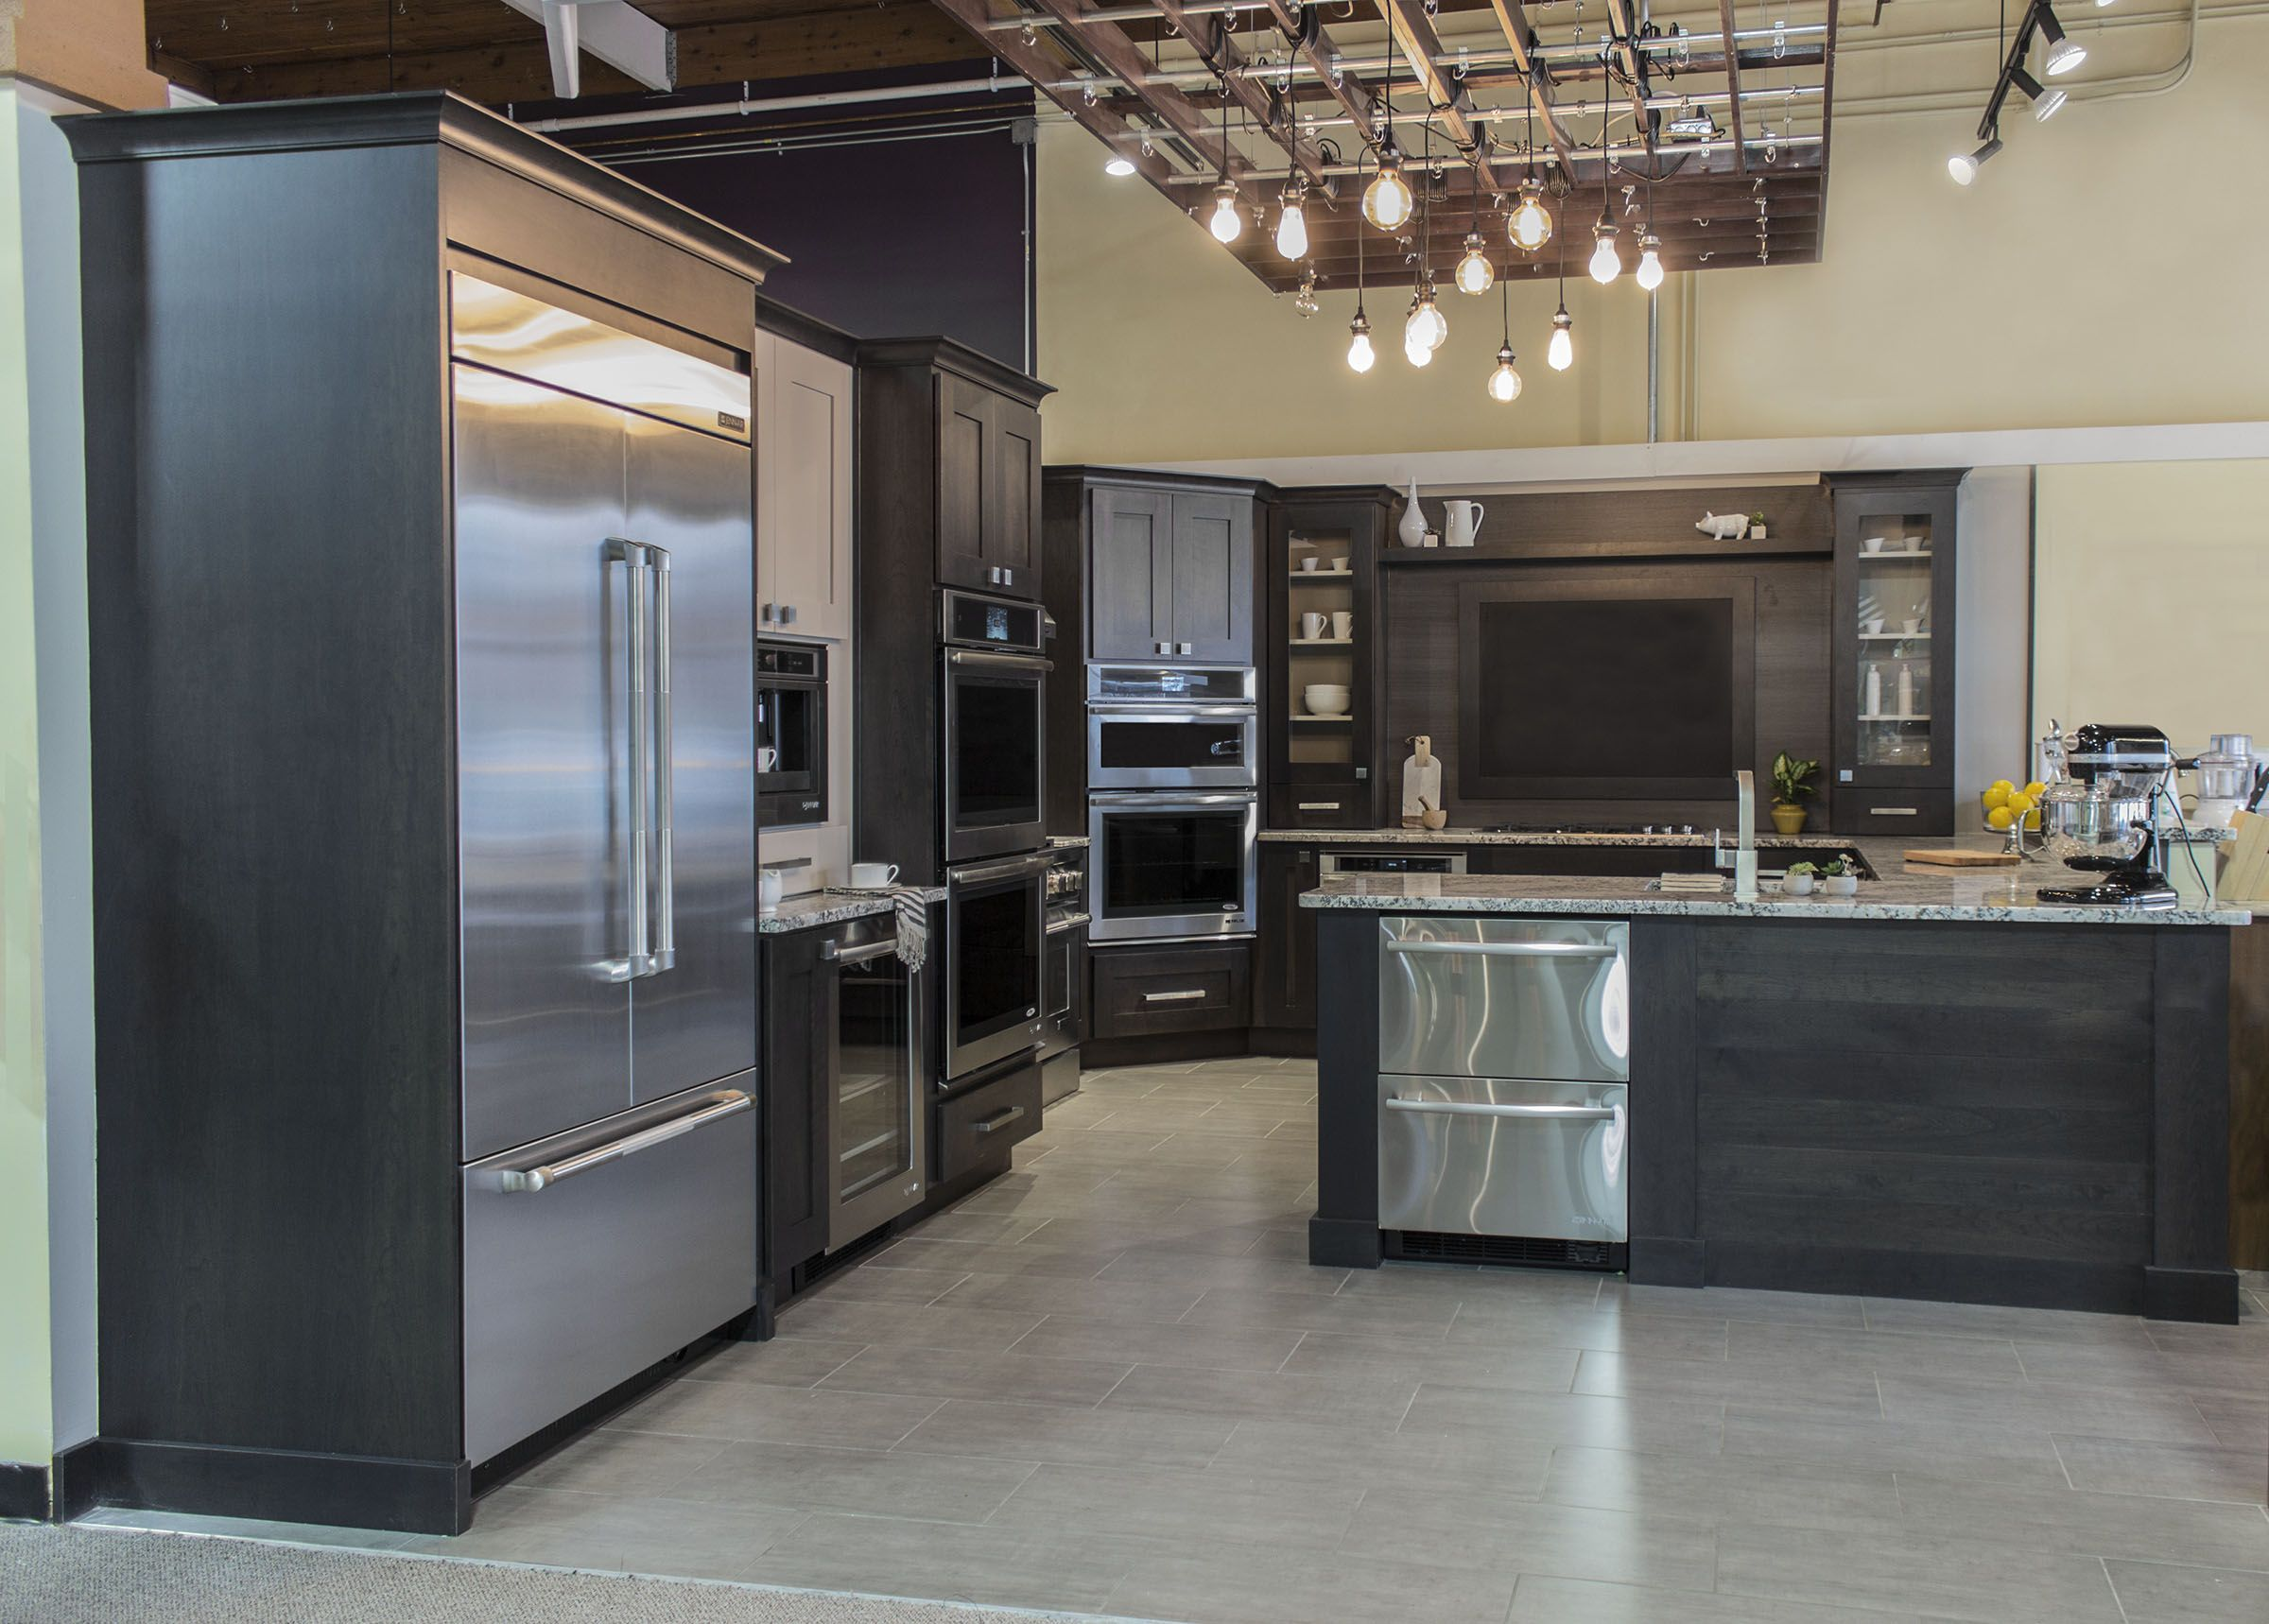 Photo Courtesy Of Ksi Designer Brianna Hogberg And Bill Amp Rod S Appliance Inc With Images